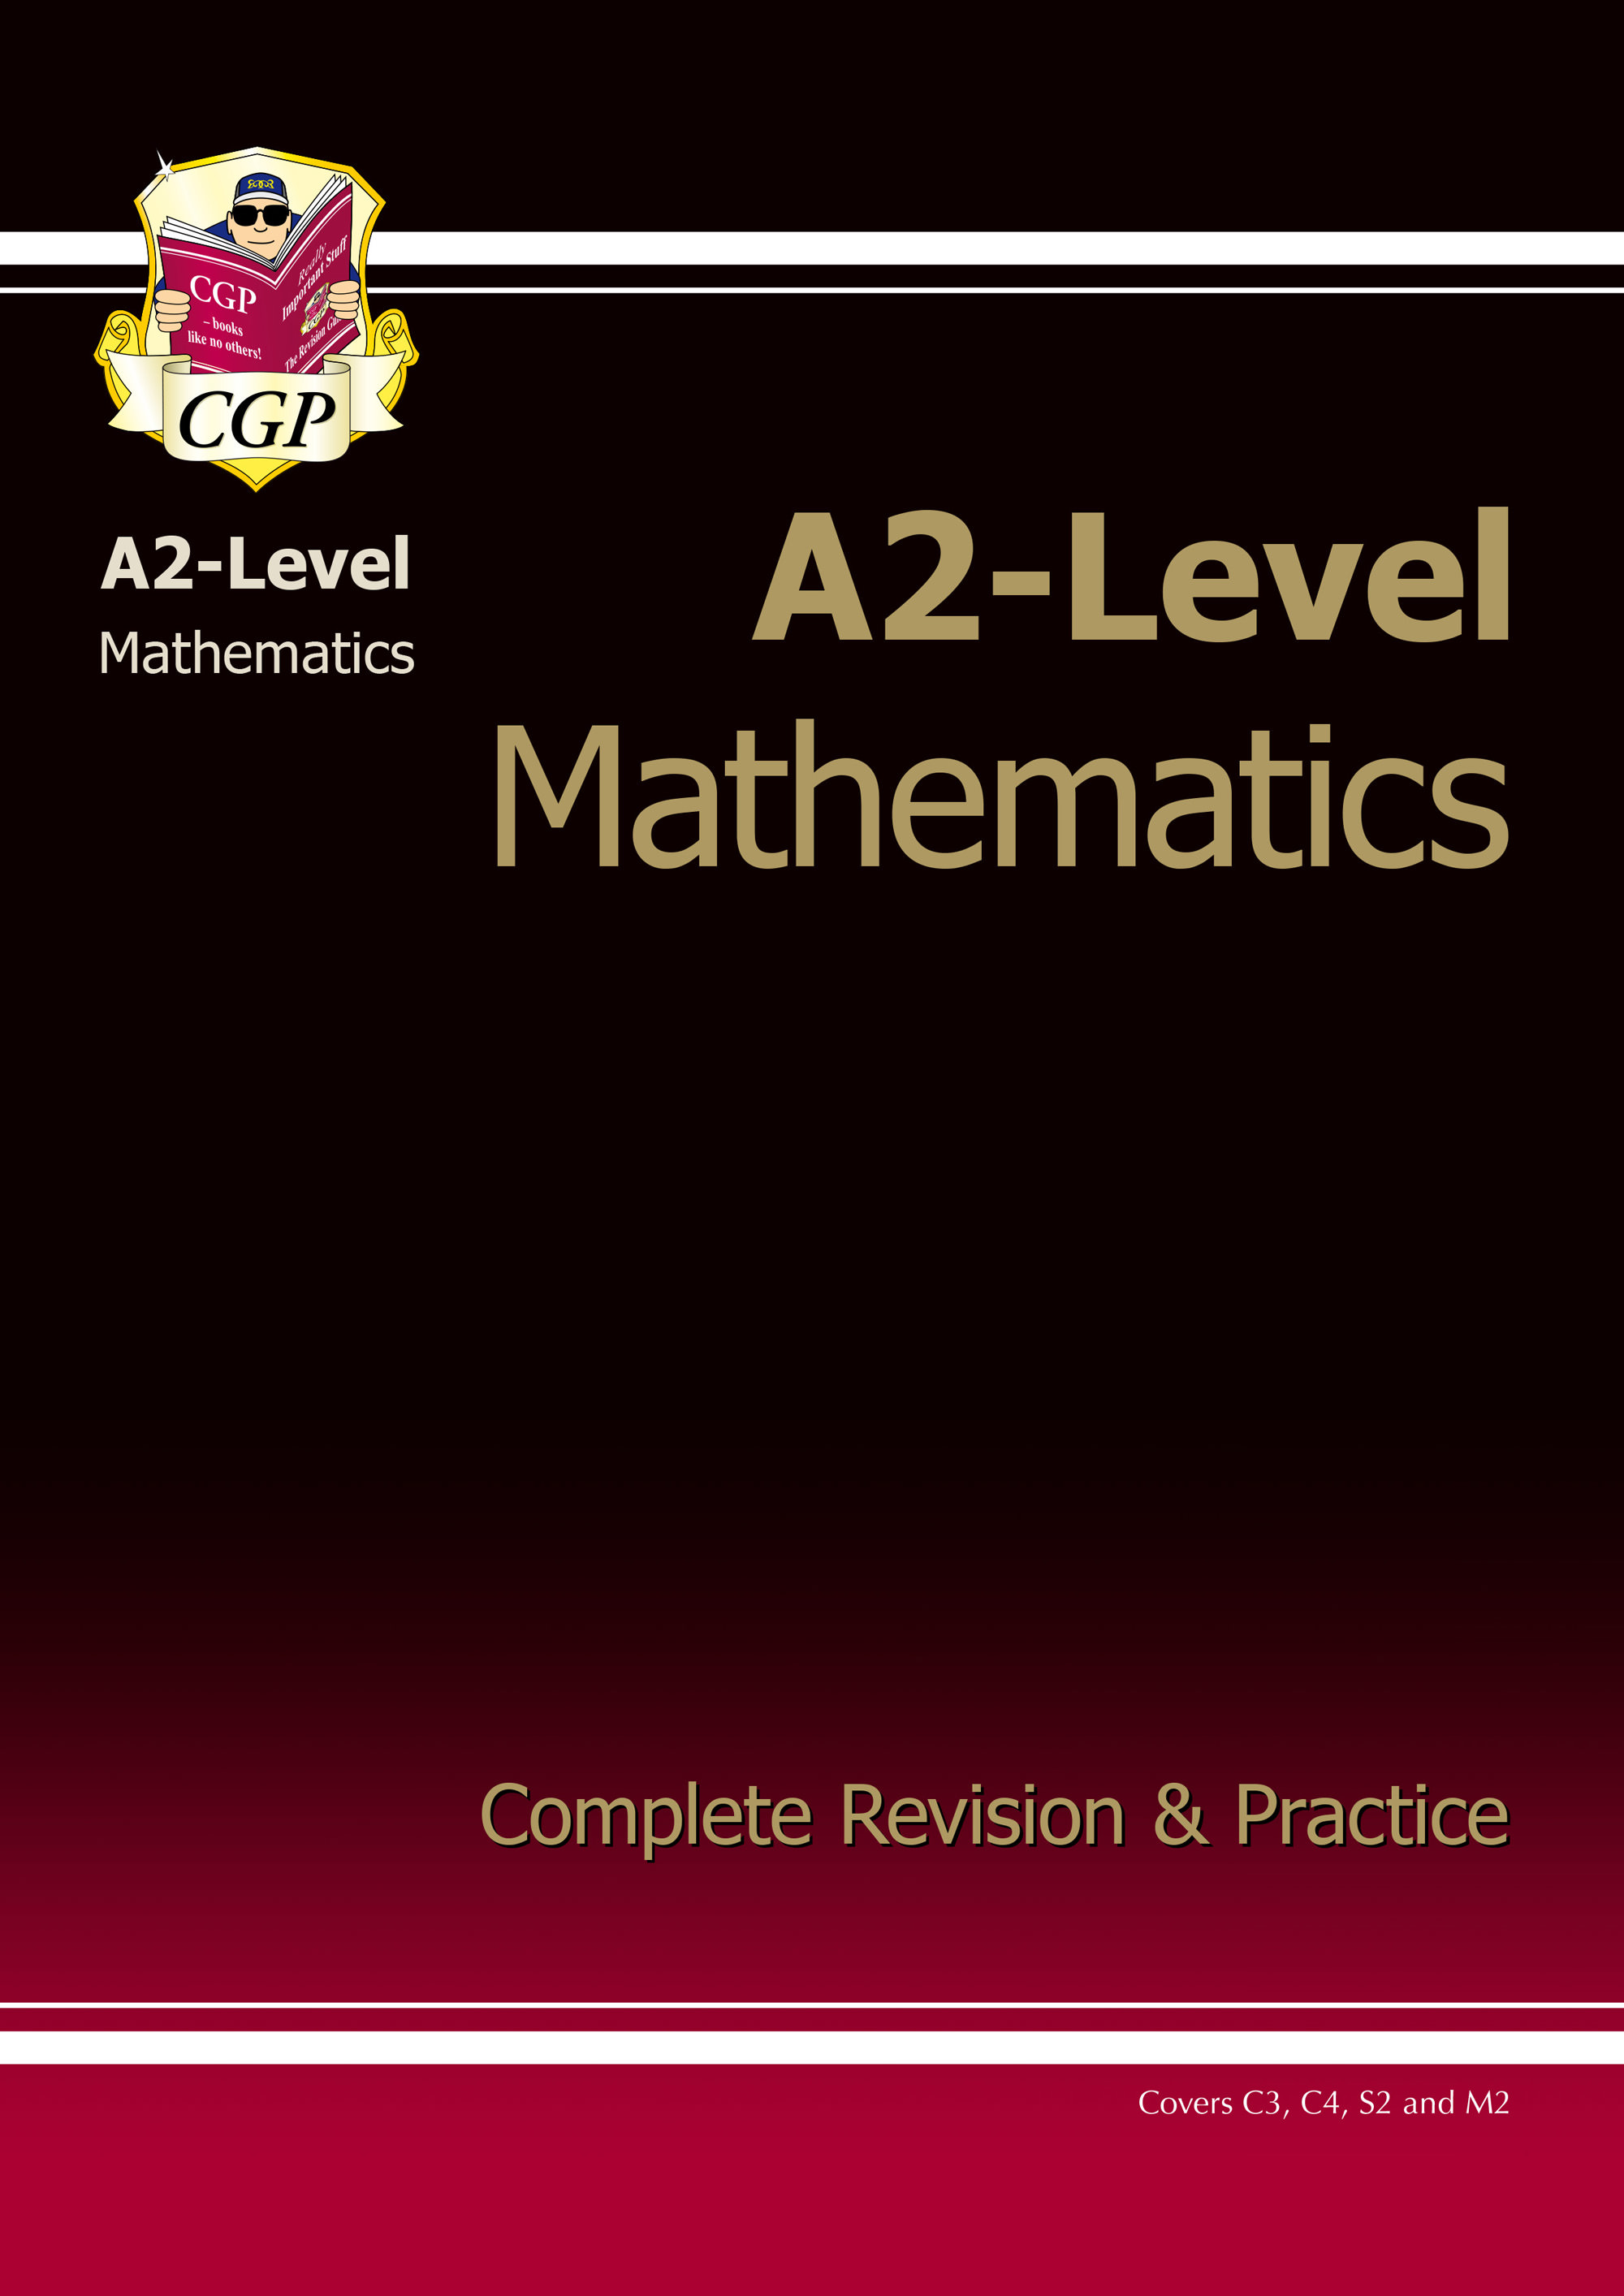 MHR61DK - A2-Level Maths Complete Revision & Practice